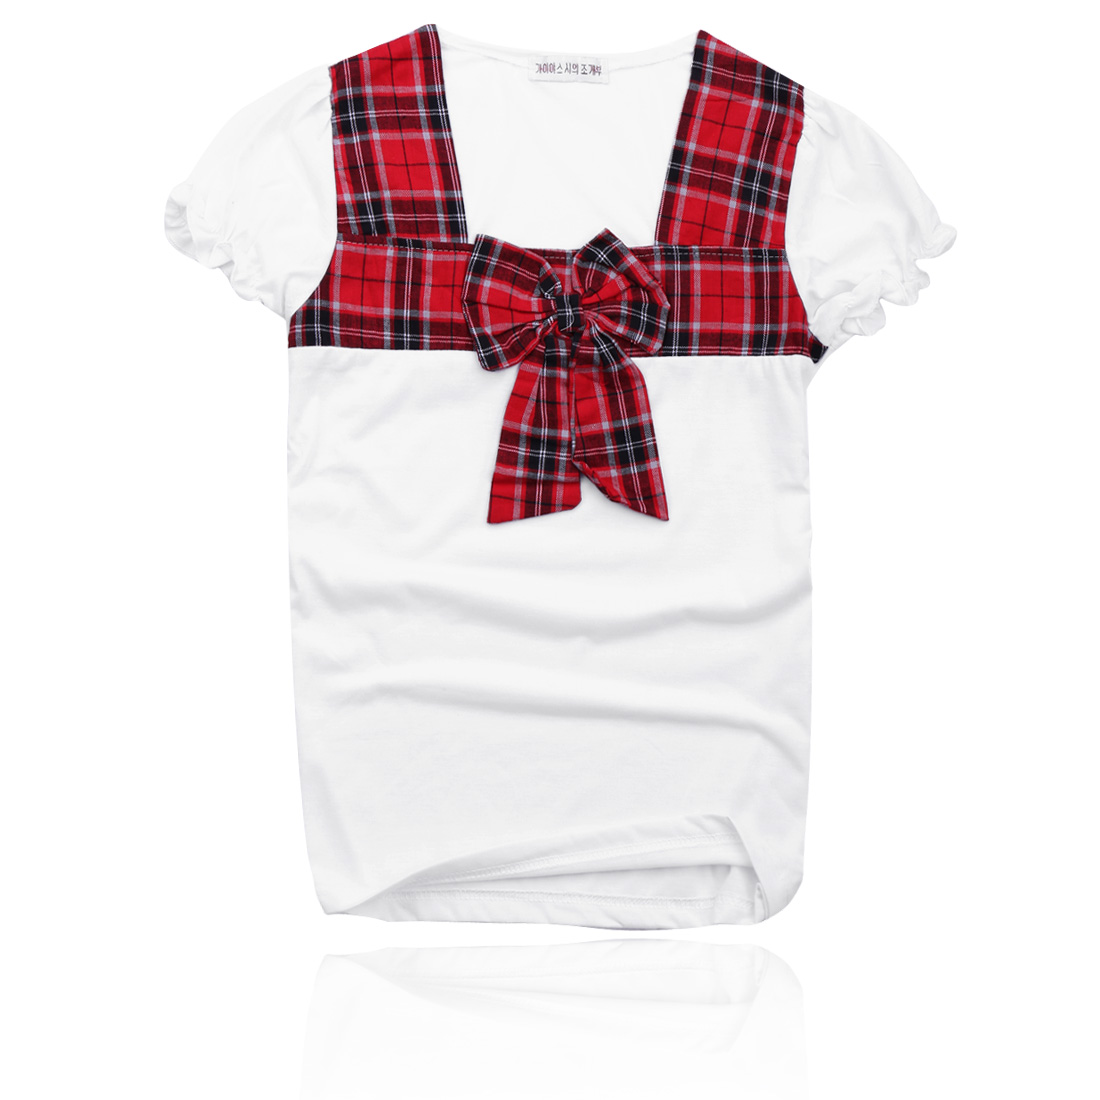 Lady Red England Checker Pattern Square Neck Short Sleeve T-Shirts XS